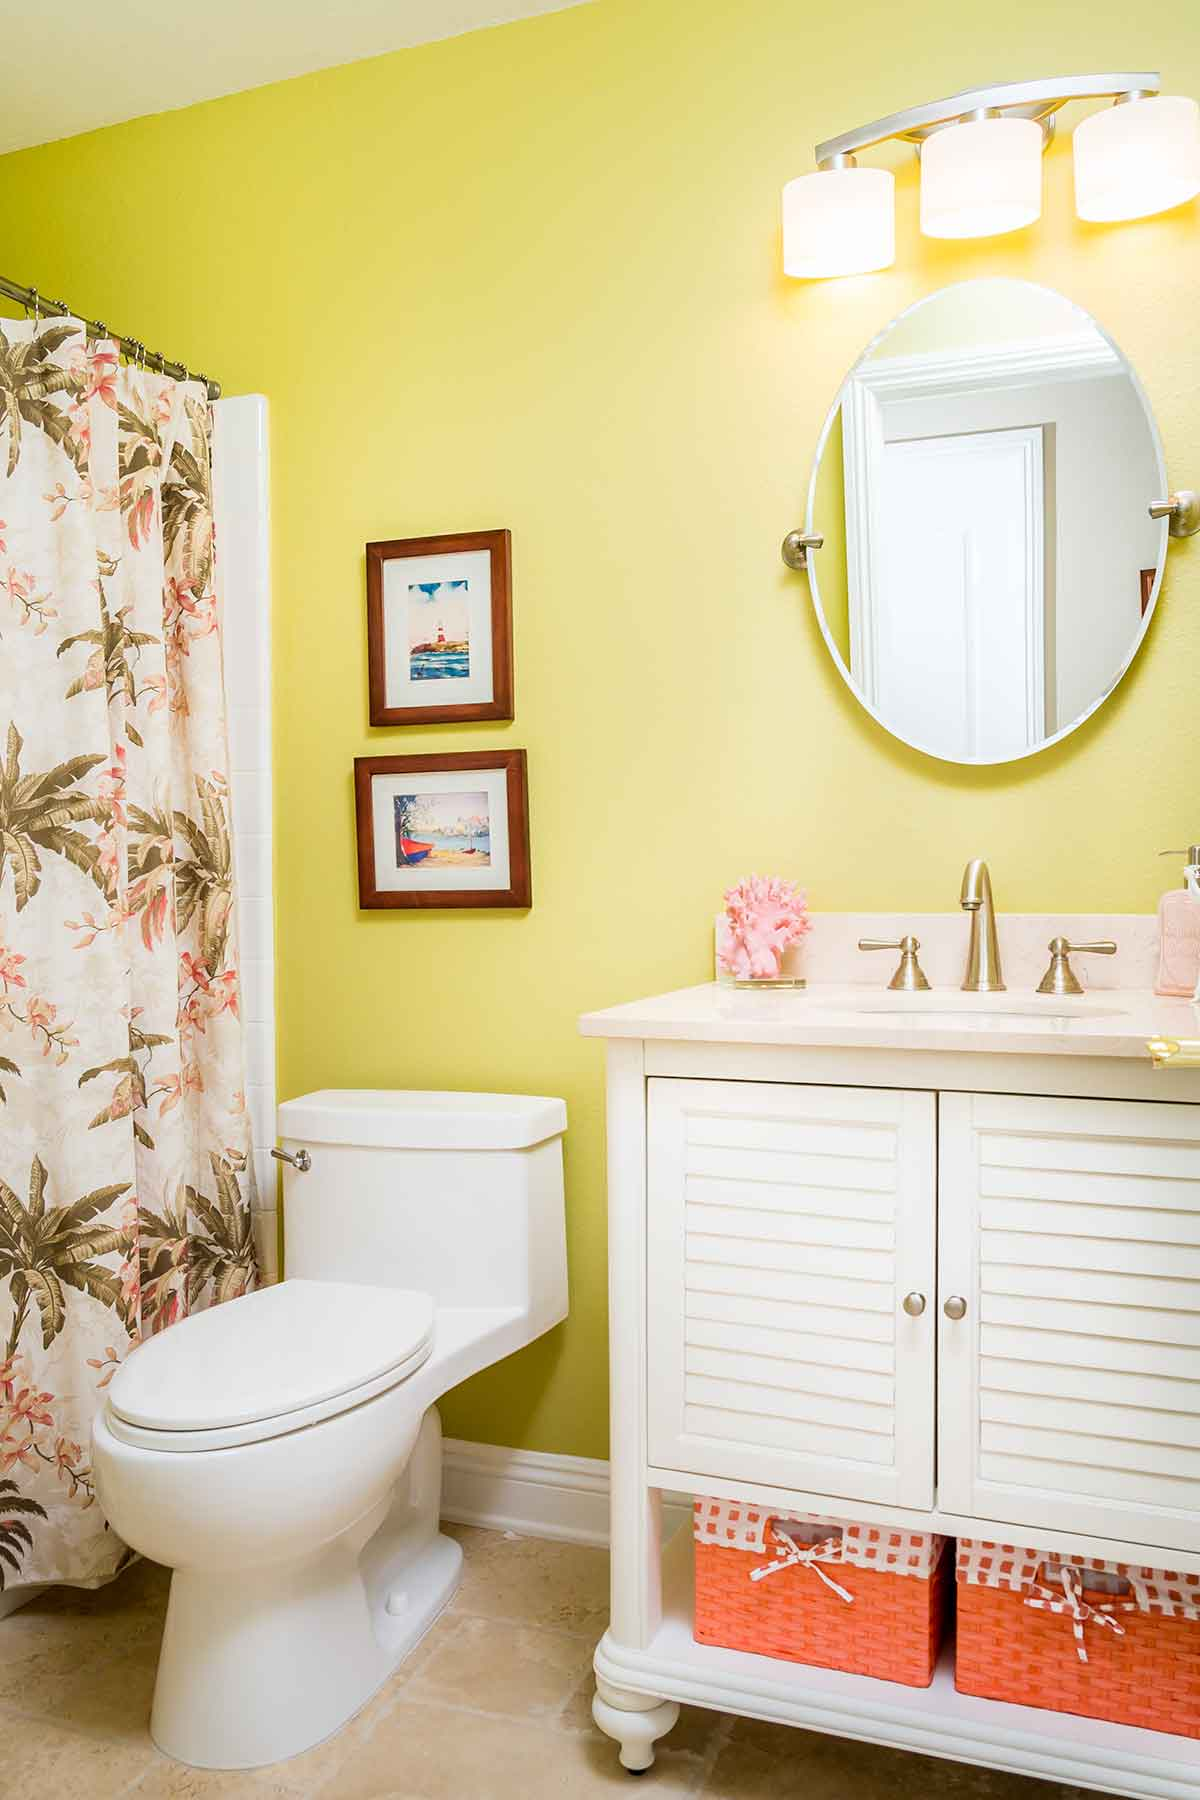 Coastal bathroom in Wheatgrass